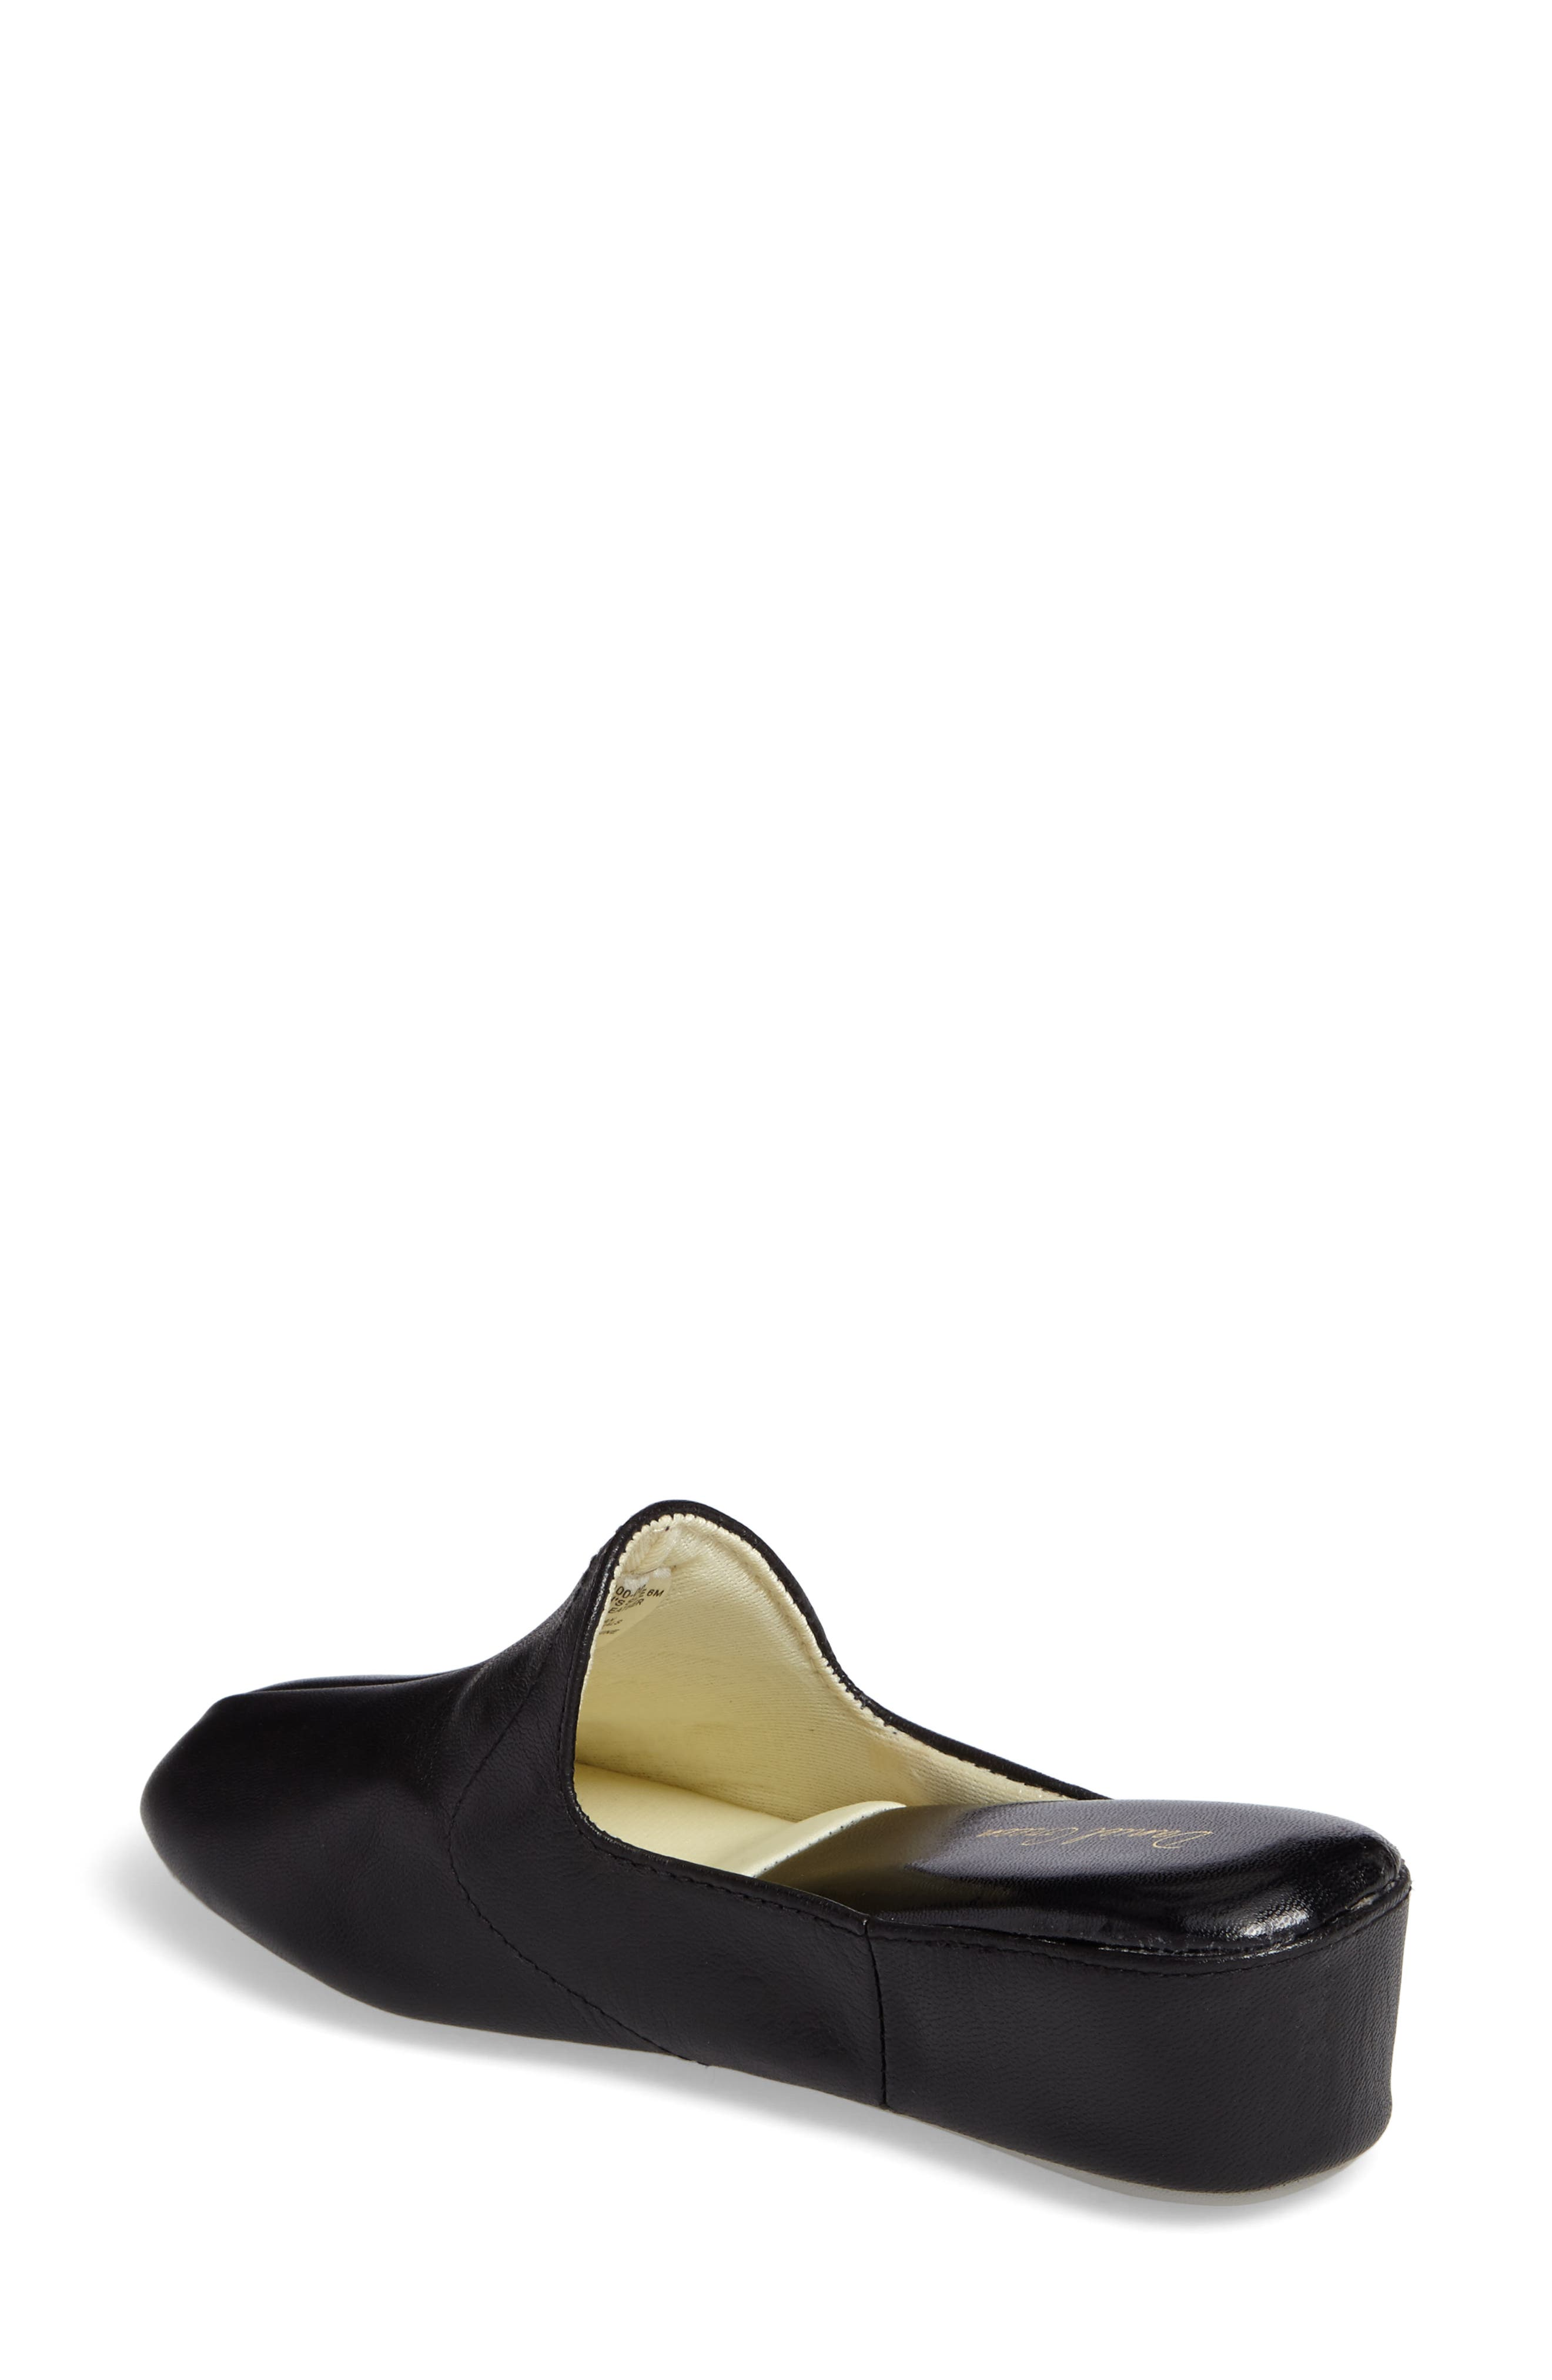 Glamour Scuff Slipper,                             Alternate thumbnail 2, color,                             BLACK LEATHER